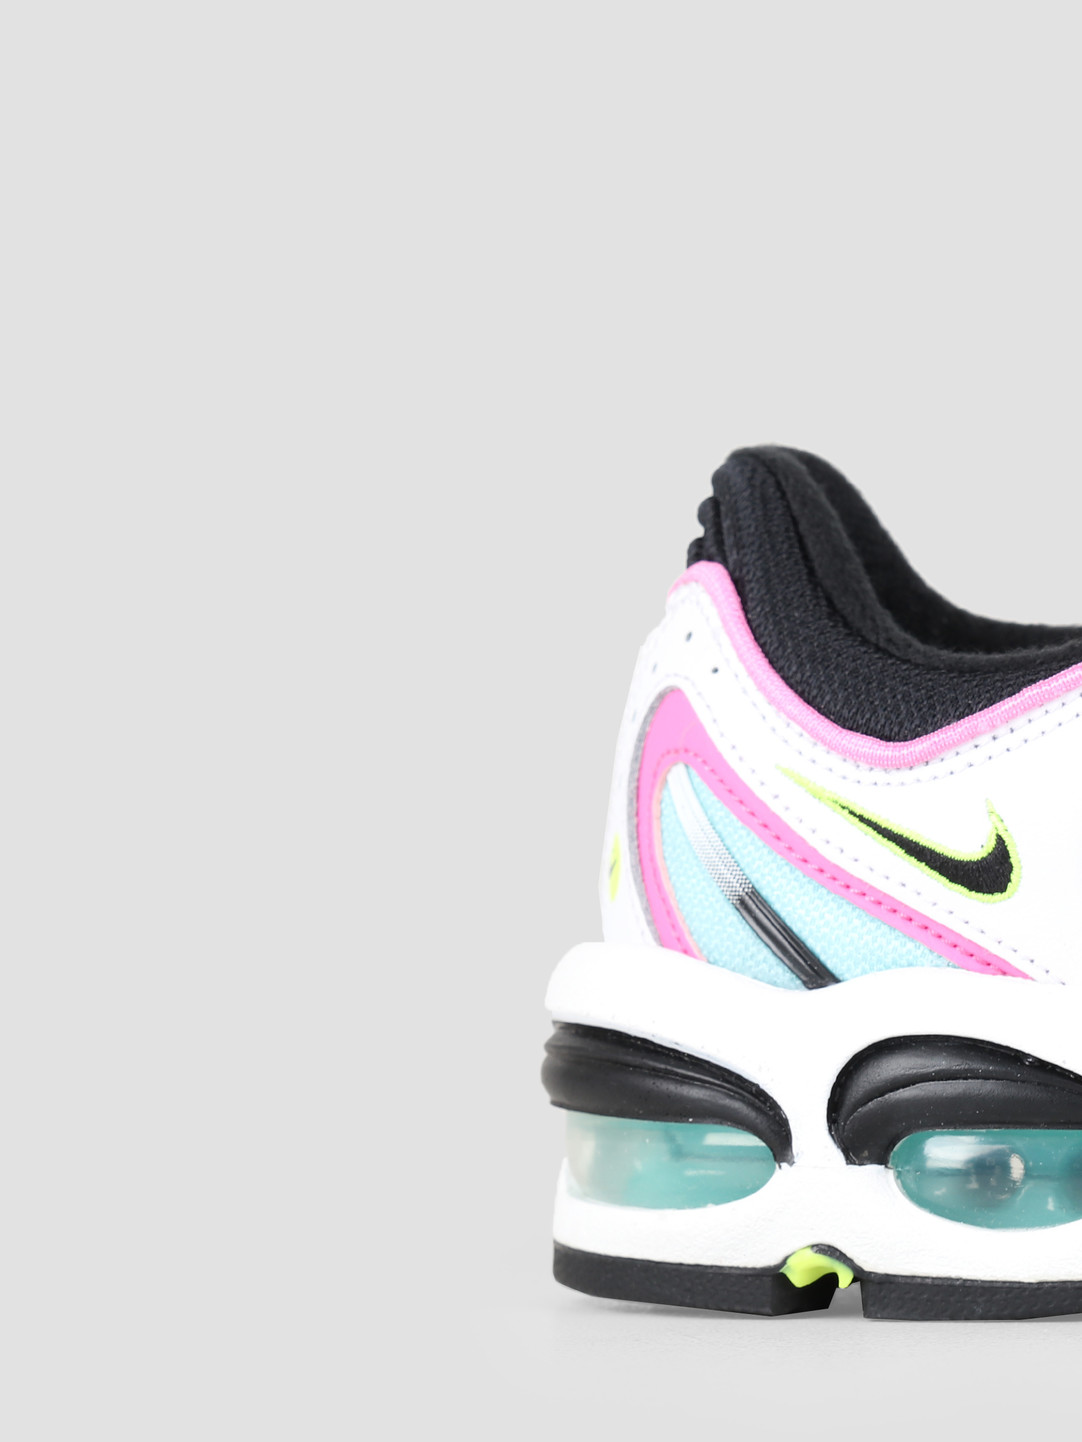 chaussures de sport 5c4f4 f6568 Nike Air Max Tailwind Iv White Black China Rose Aurora Green AQ2567-103